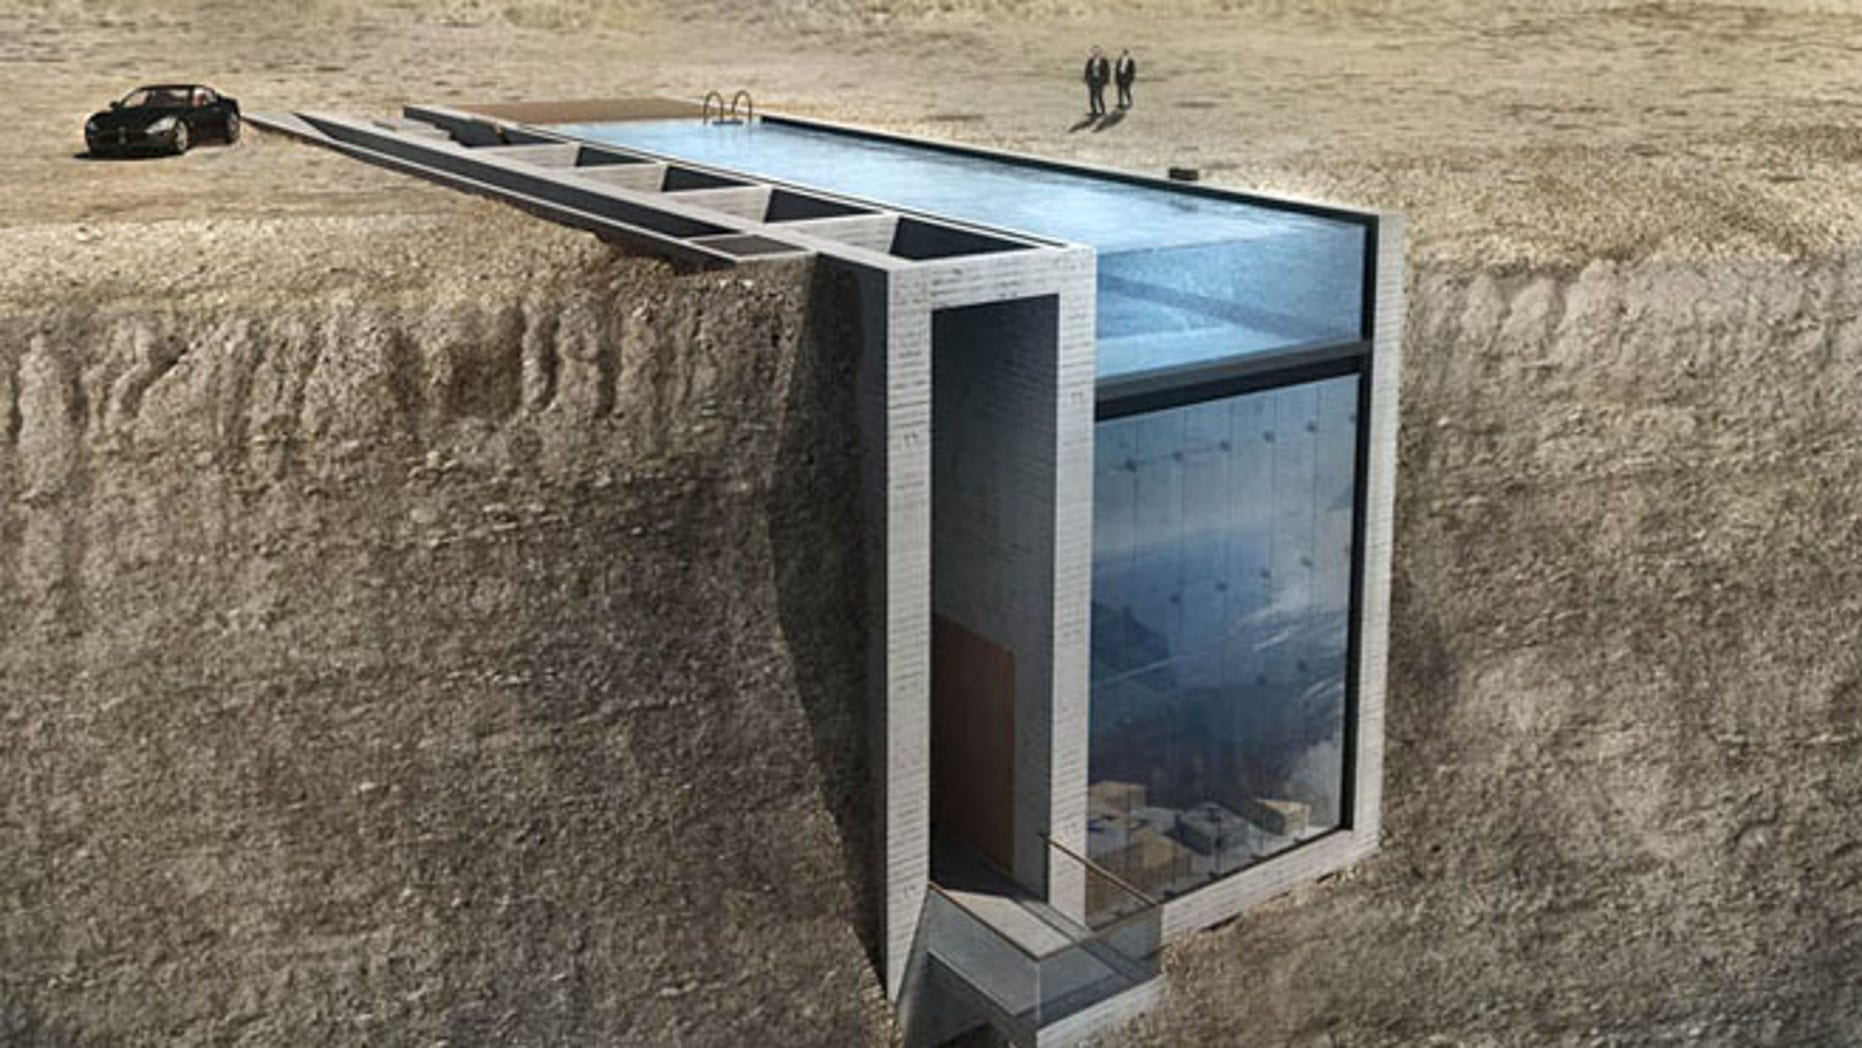 This house sits not above ground, but inside the rock itself.